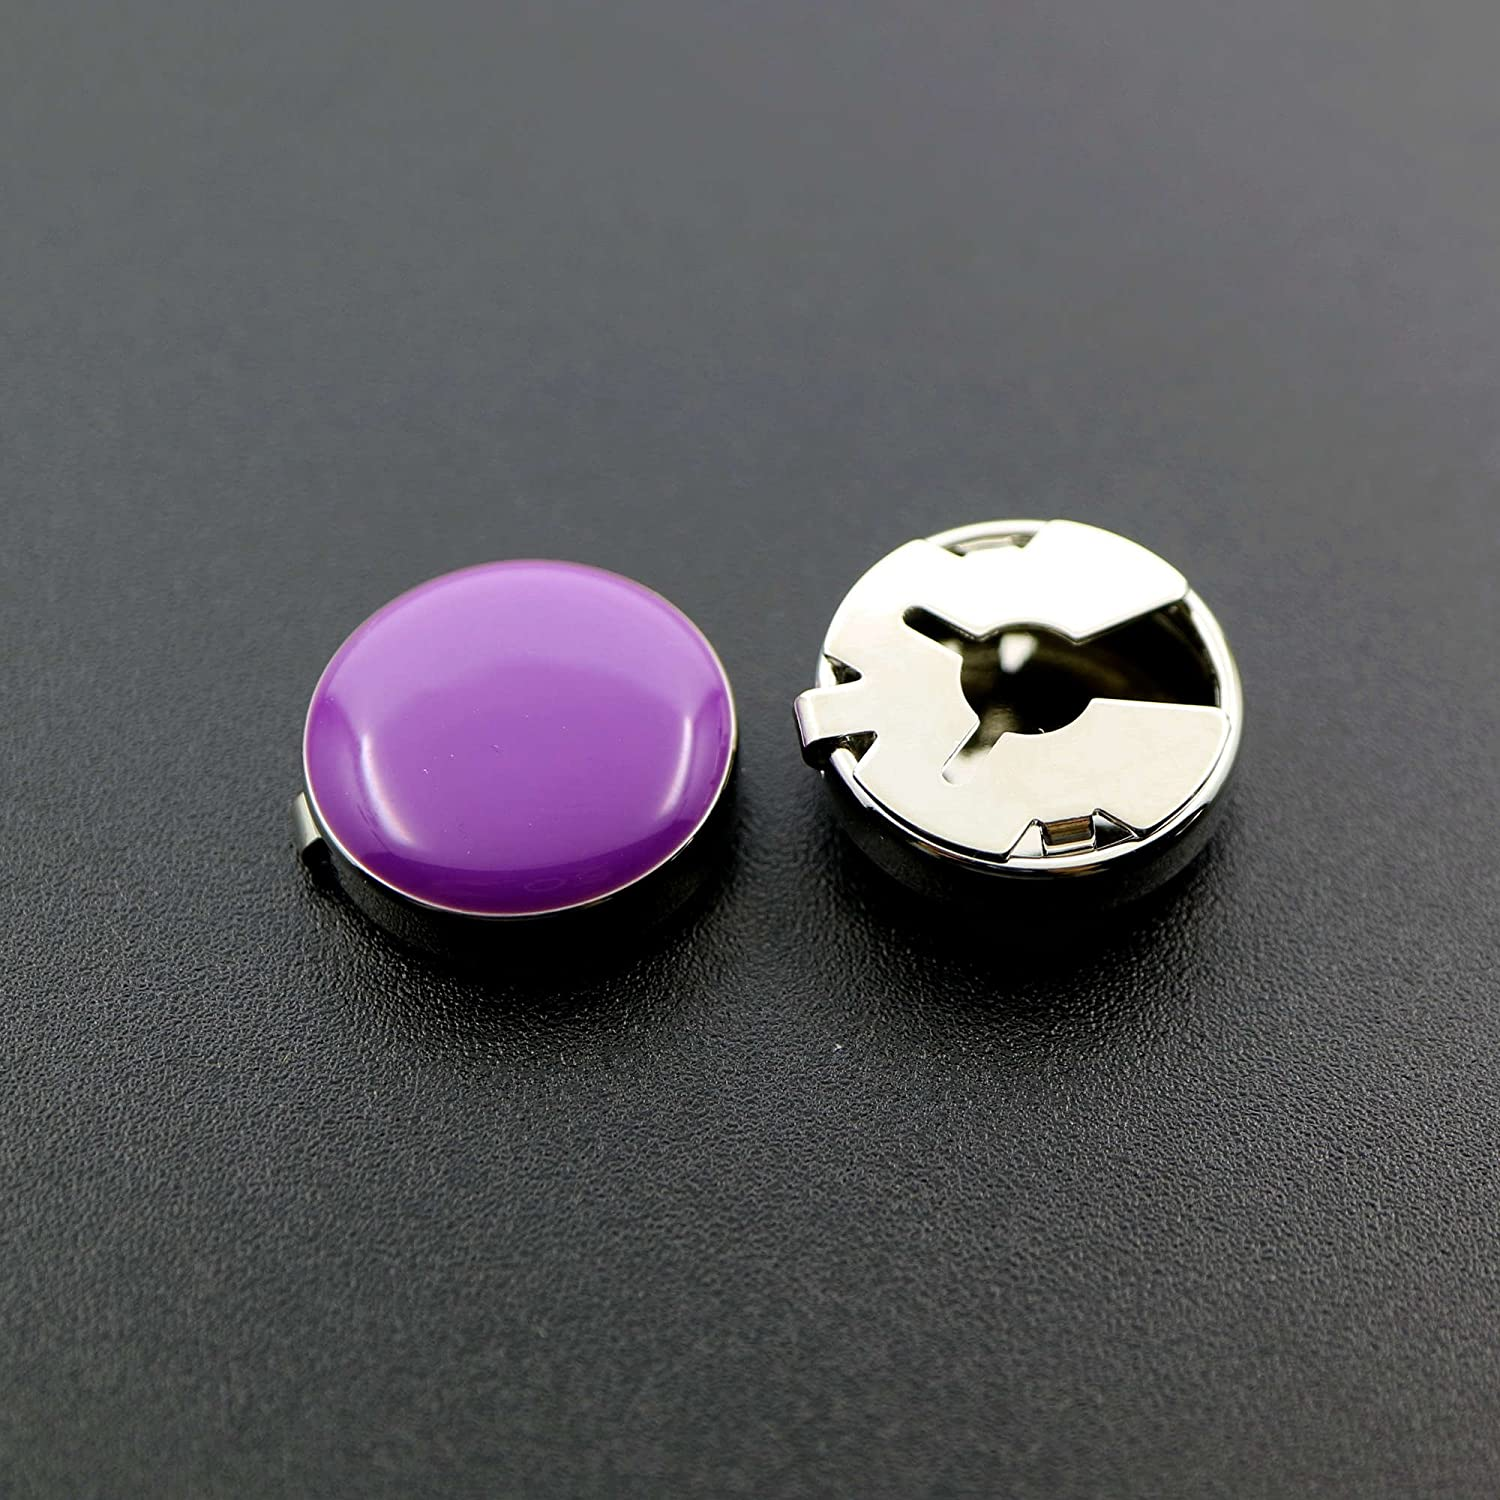 Ms.Iconic 17.5MM Black,Blue,Purple Round Cuff Button Cover Cuff Links for Wedding Formal Shirt 6Pcs/Set